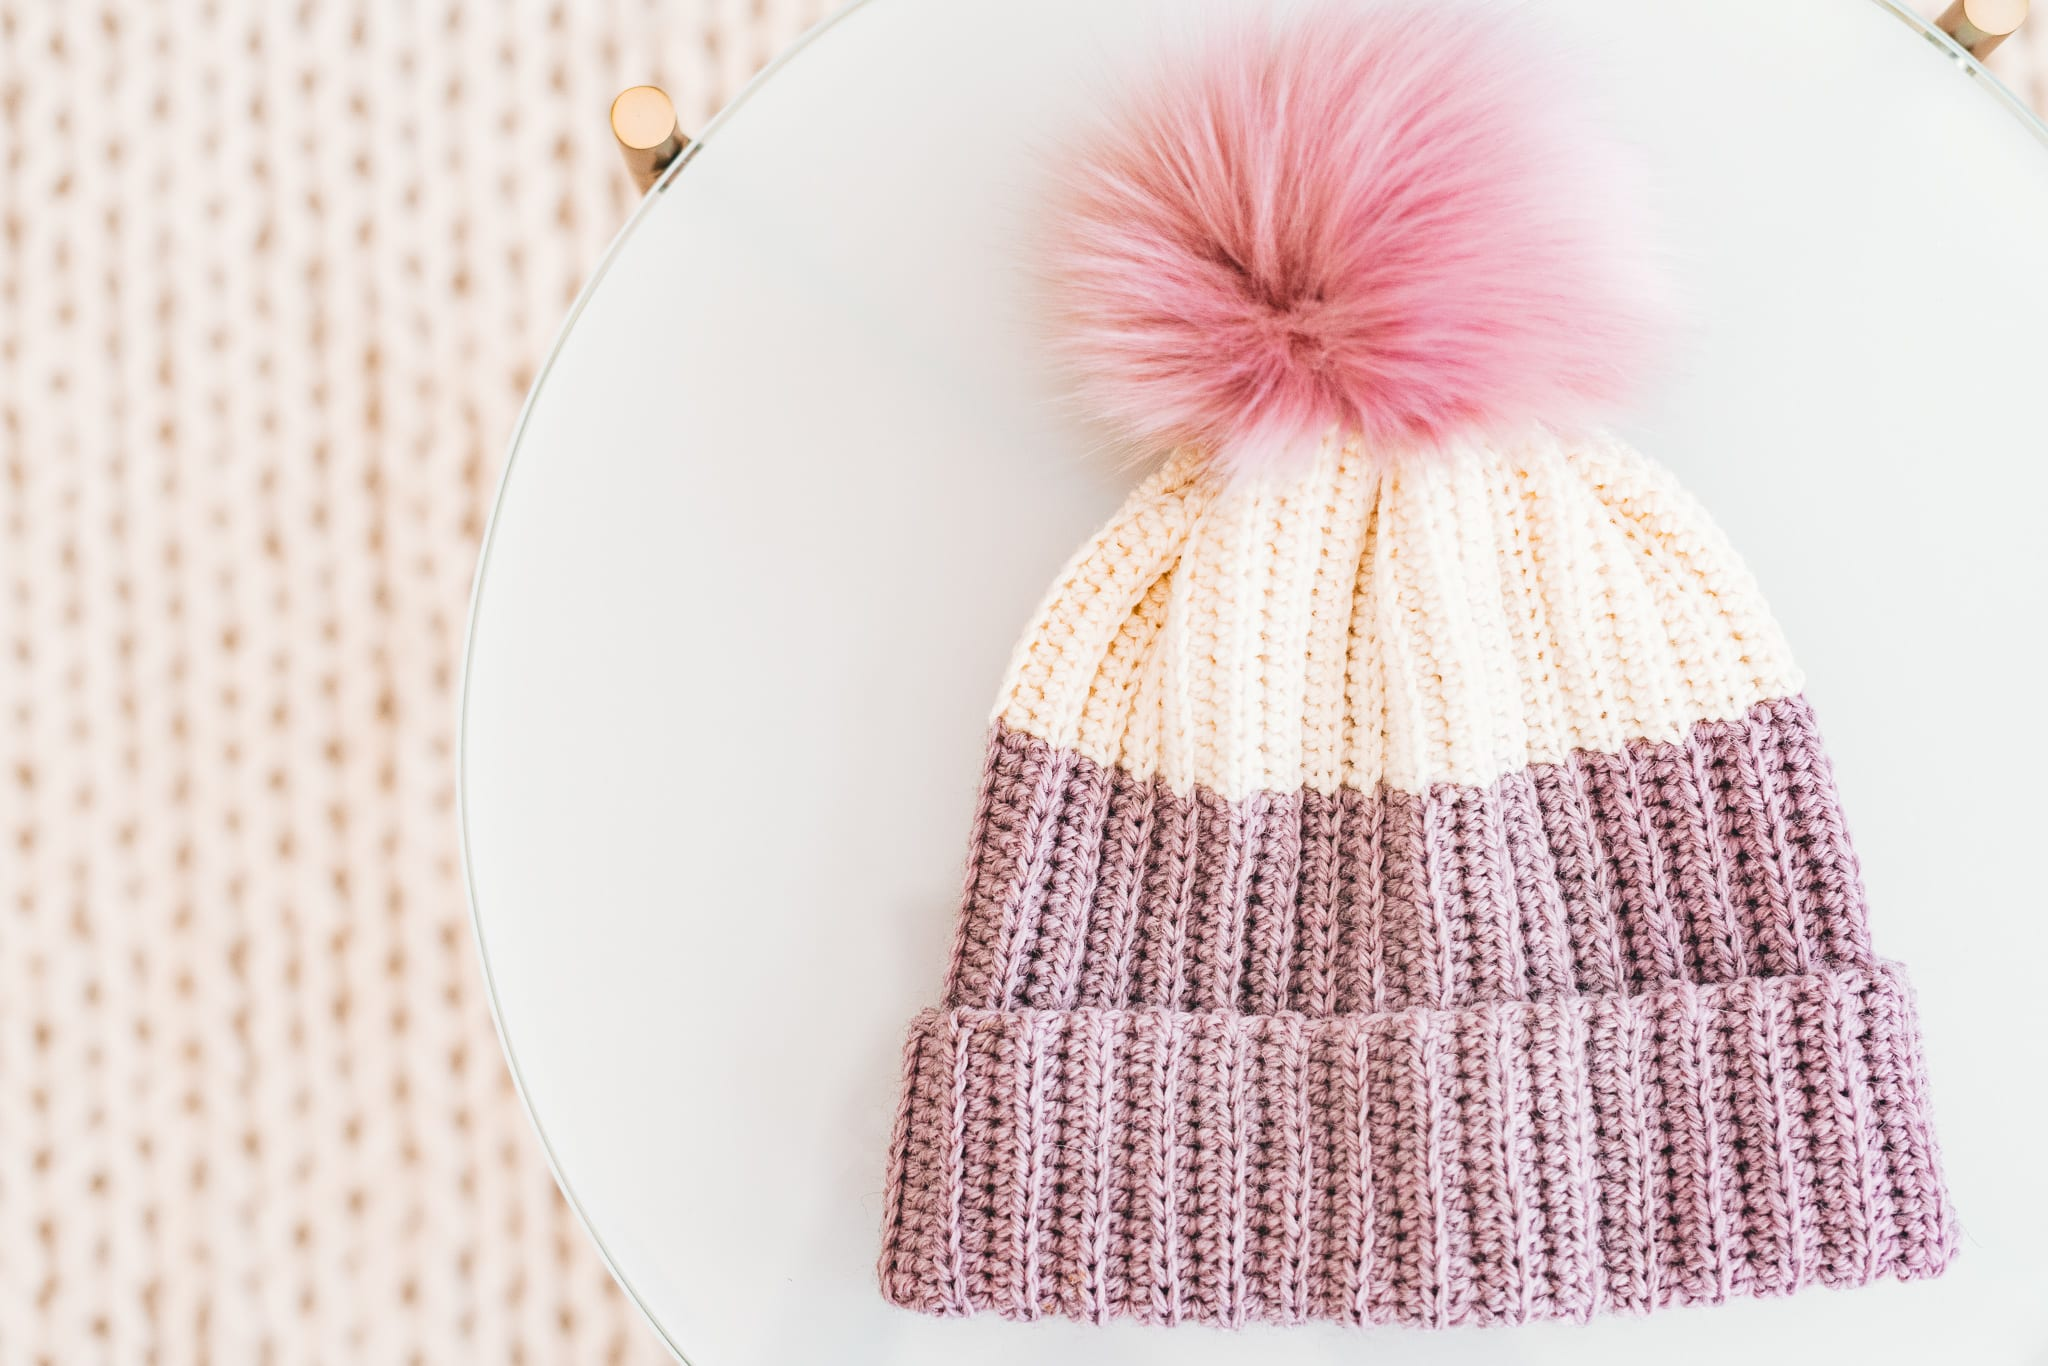 Crochet hat with knit look fabric and a faux fur pom pom